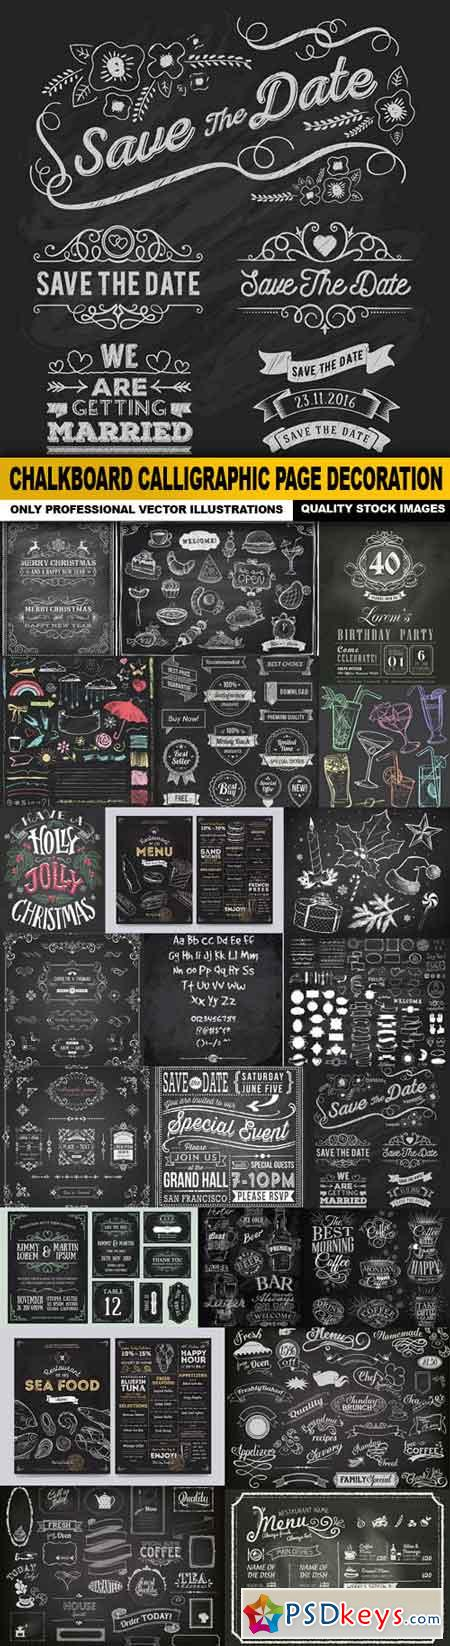 Chalkboard Calligraphic Page Decoration - 22 Vector